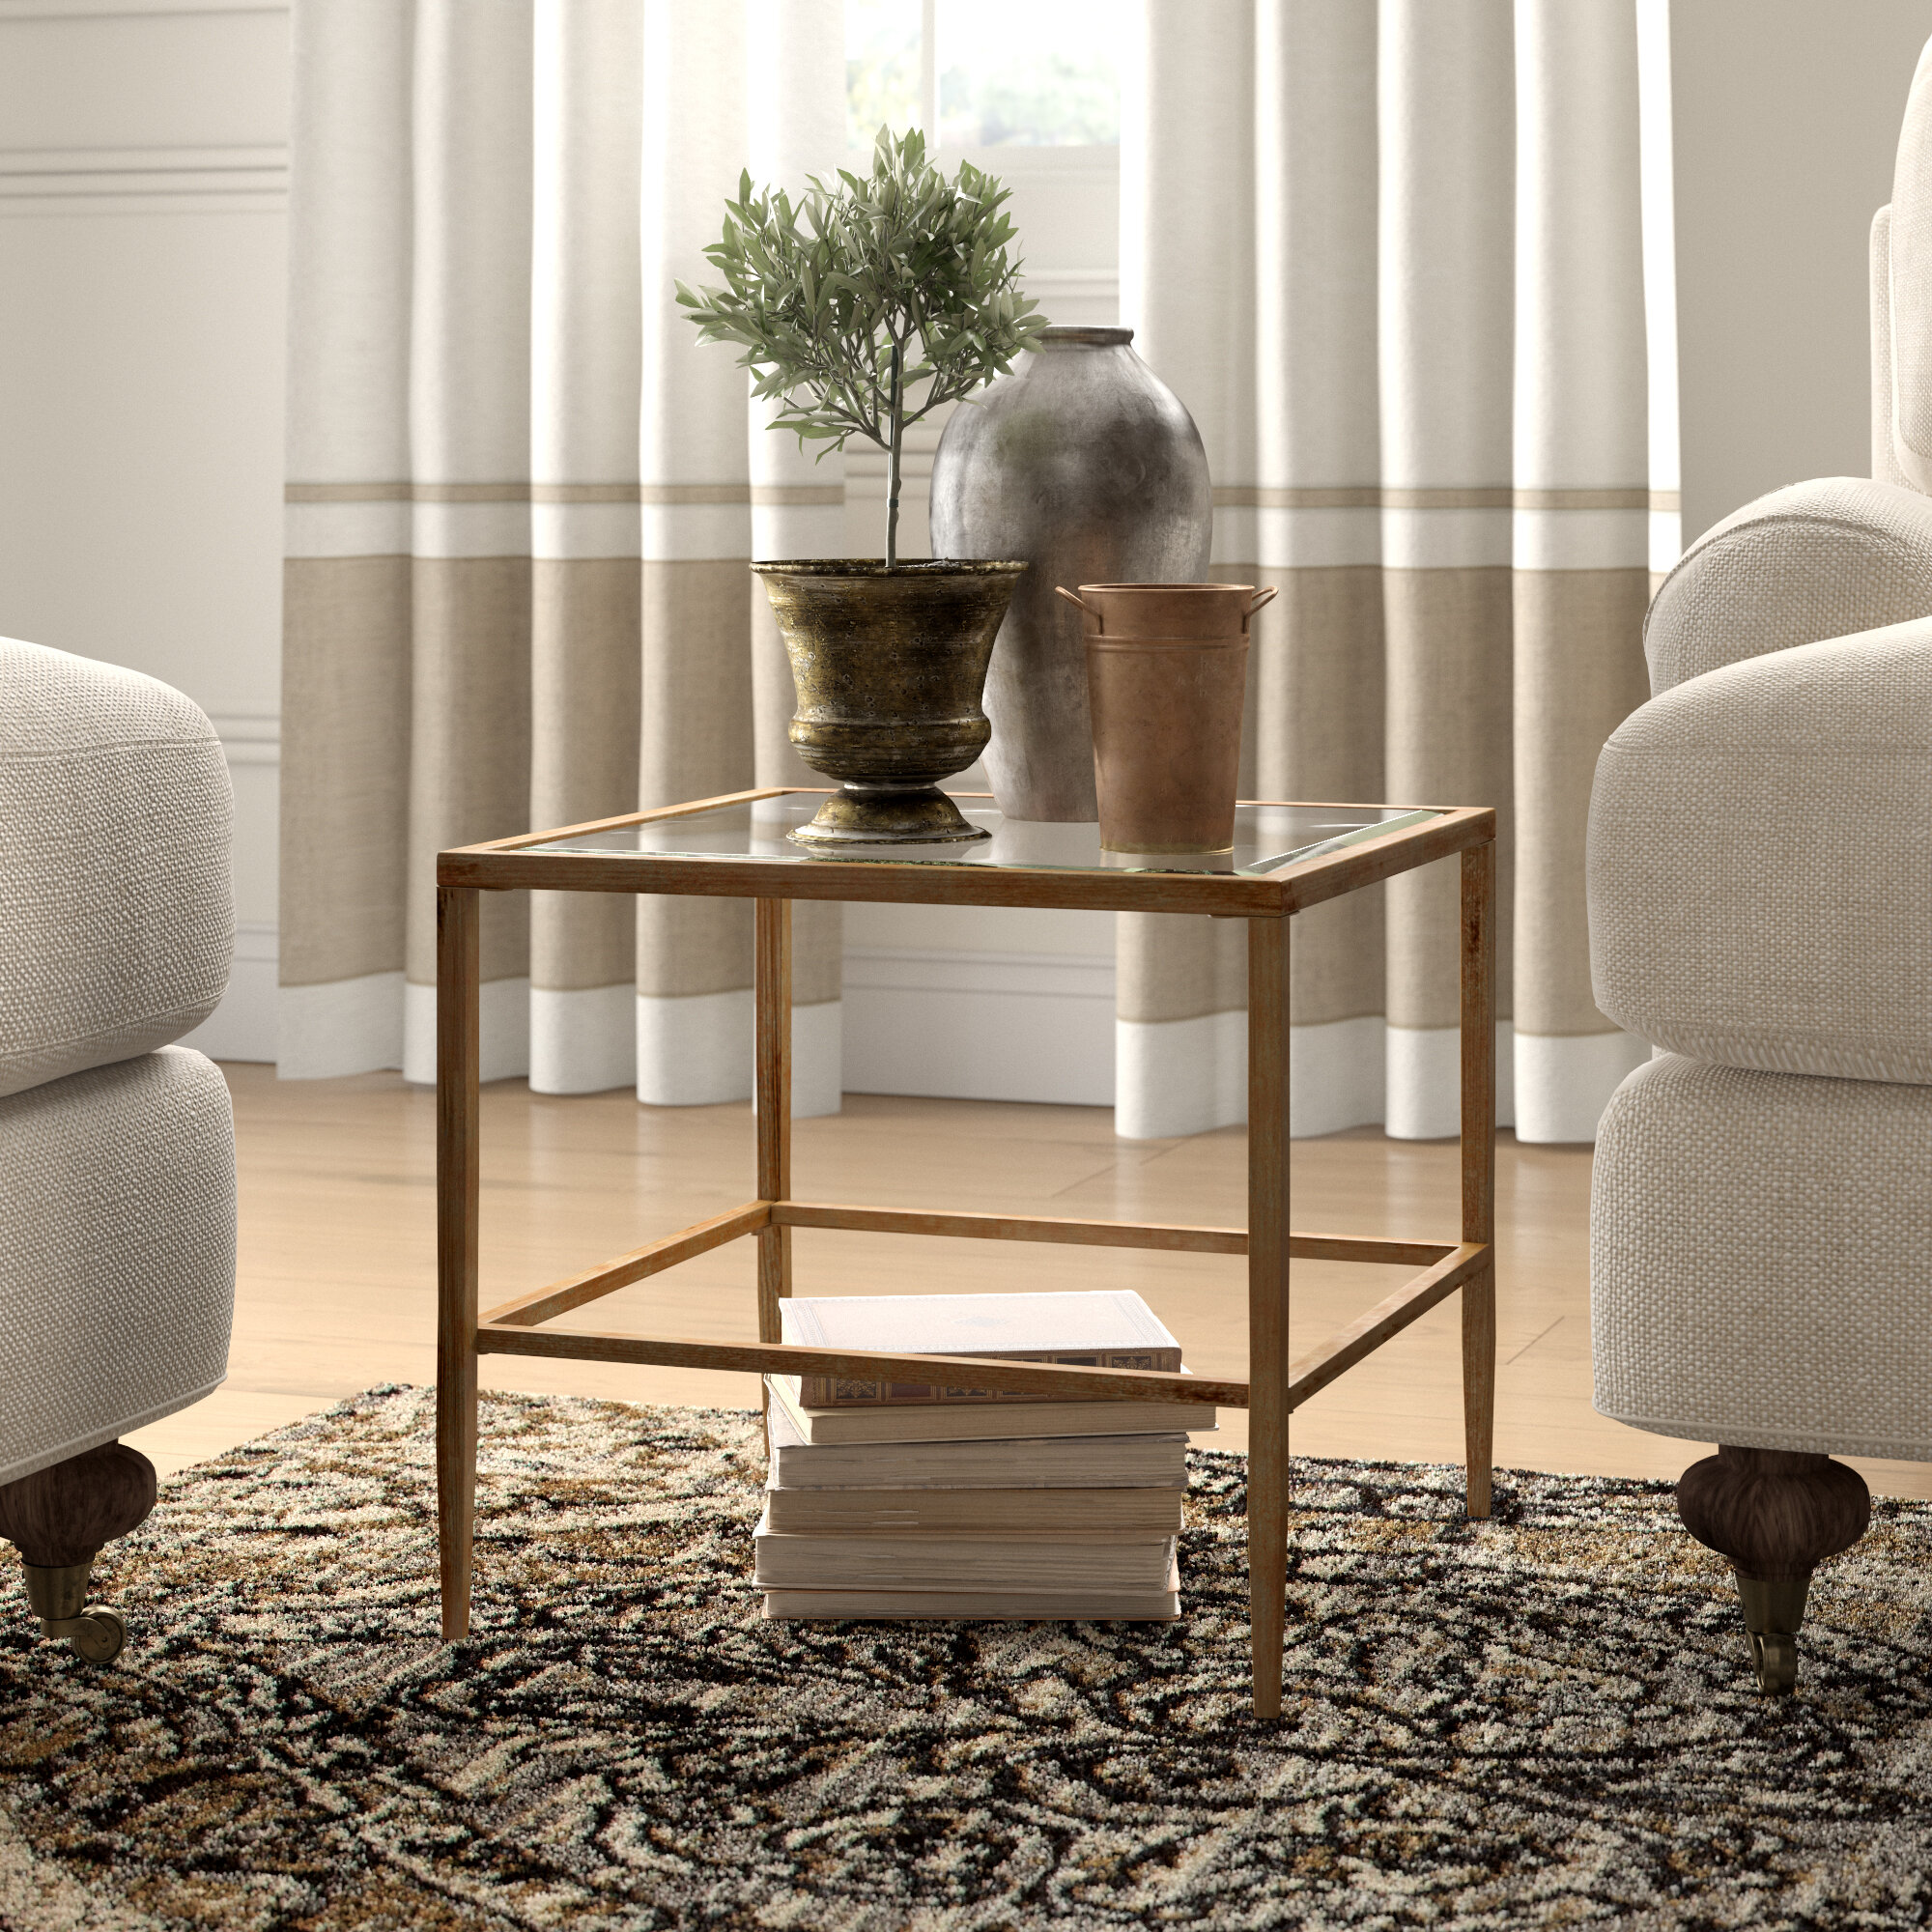 Groovy Glass End Tables Youll Love In 2019 Wayfair Download Free Architecture Designs Xaembritishbridgeorg